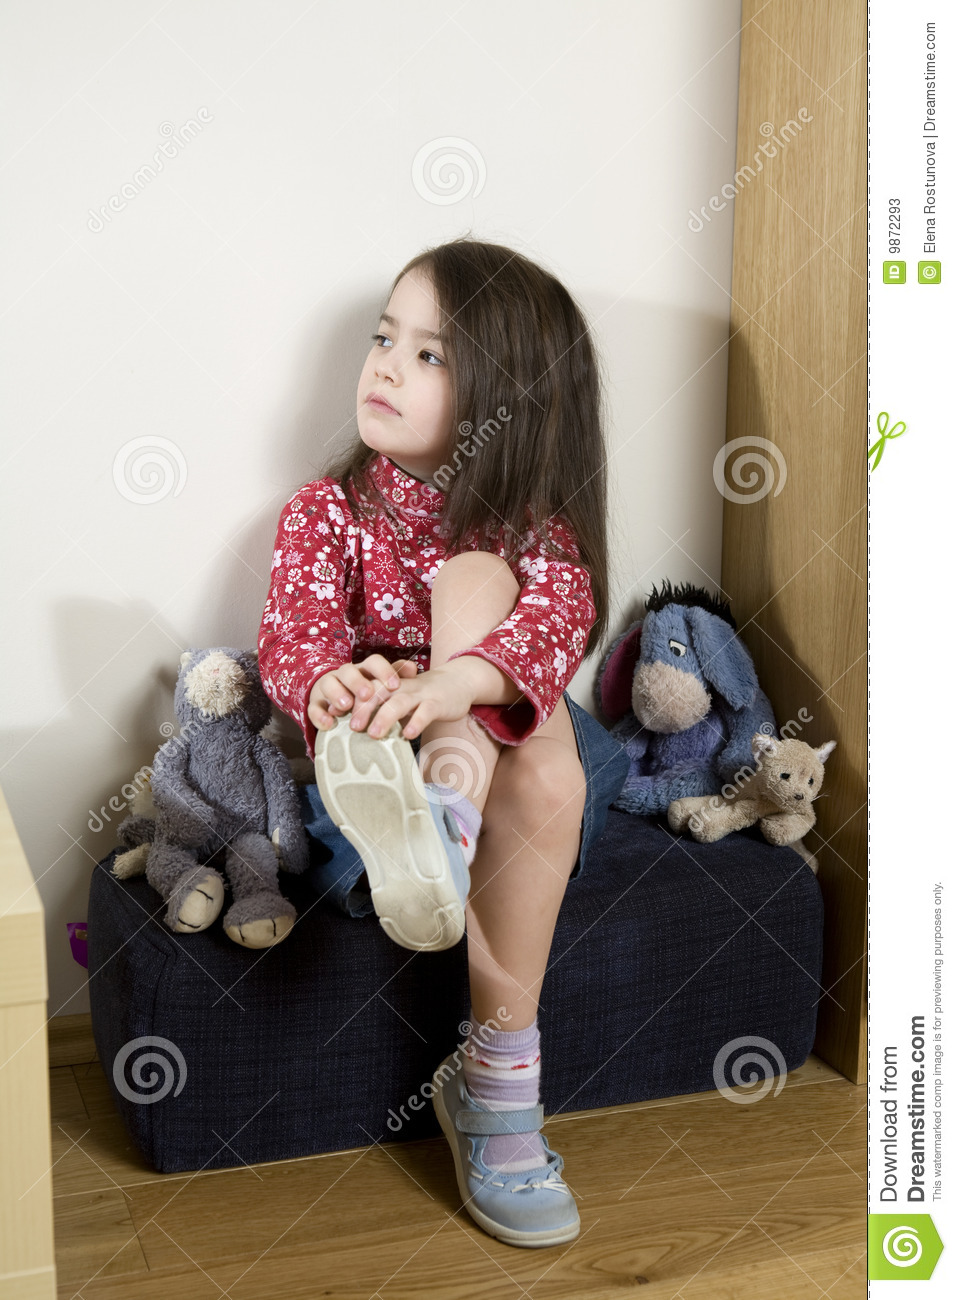 little girl sitting on chair stock photos image 9872293. Black Bedroom Furniture Sets. Home Design Ideas